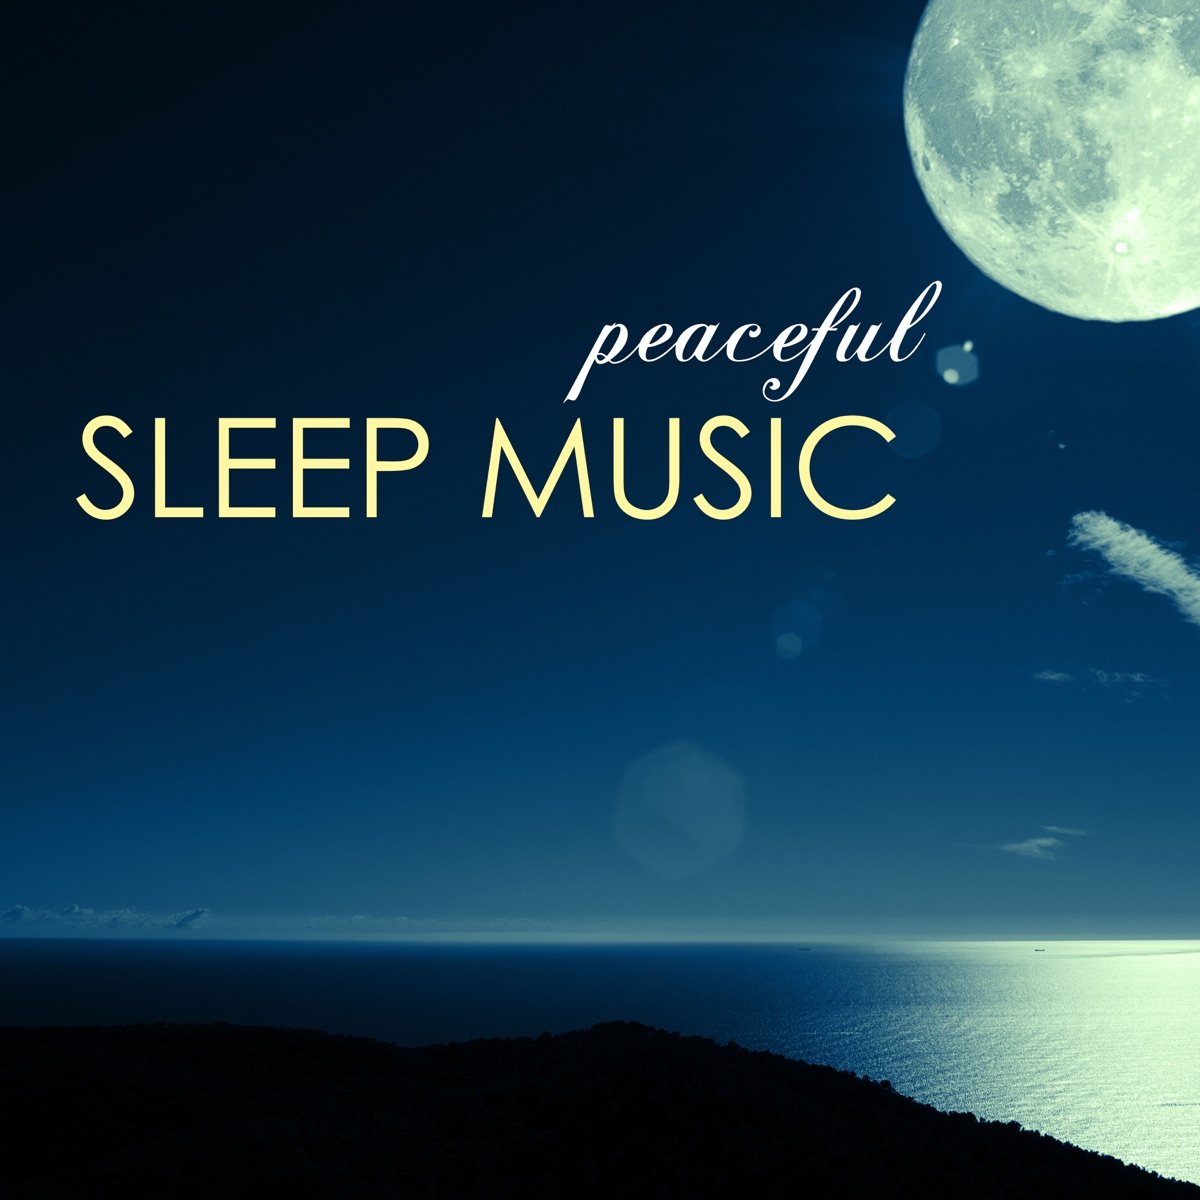 Sleep Music For Kids Peaceful Sleep Music Best Collection Of Liquid Songs And Sounds